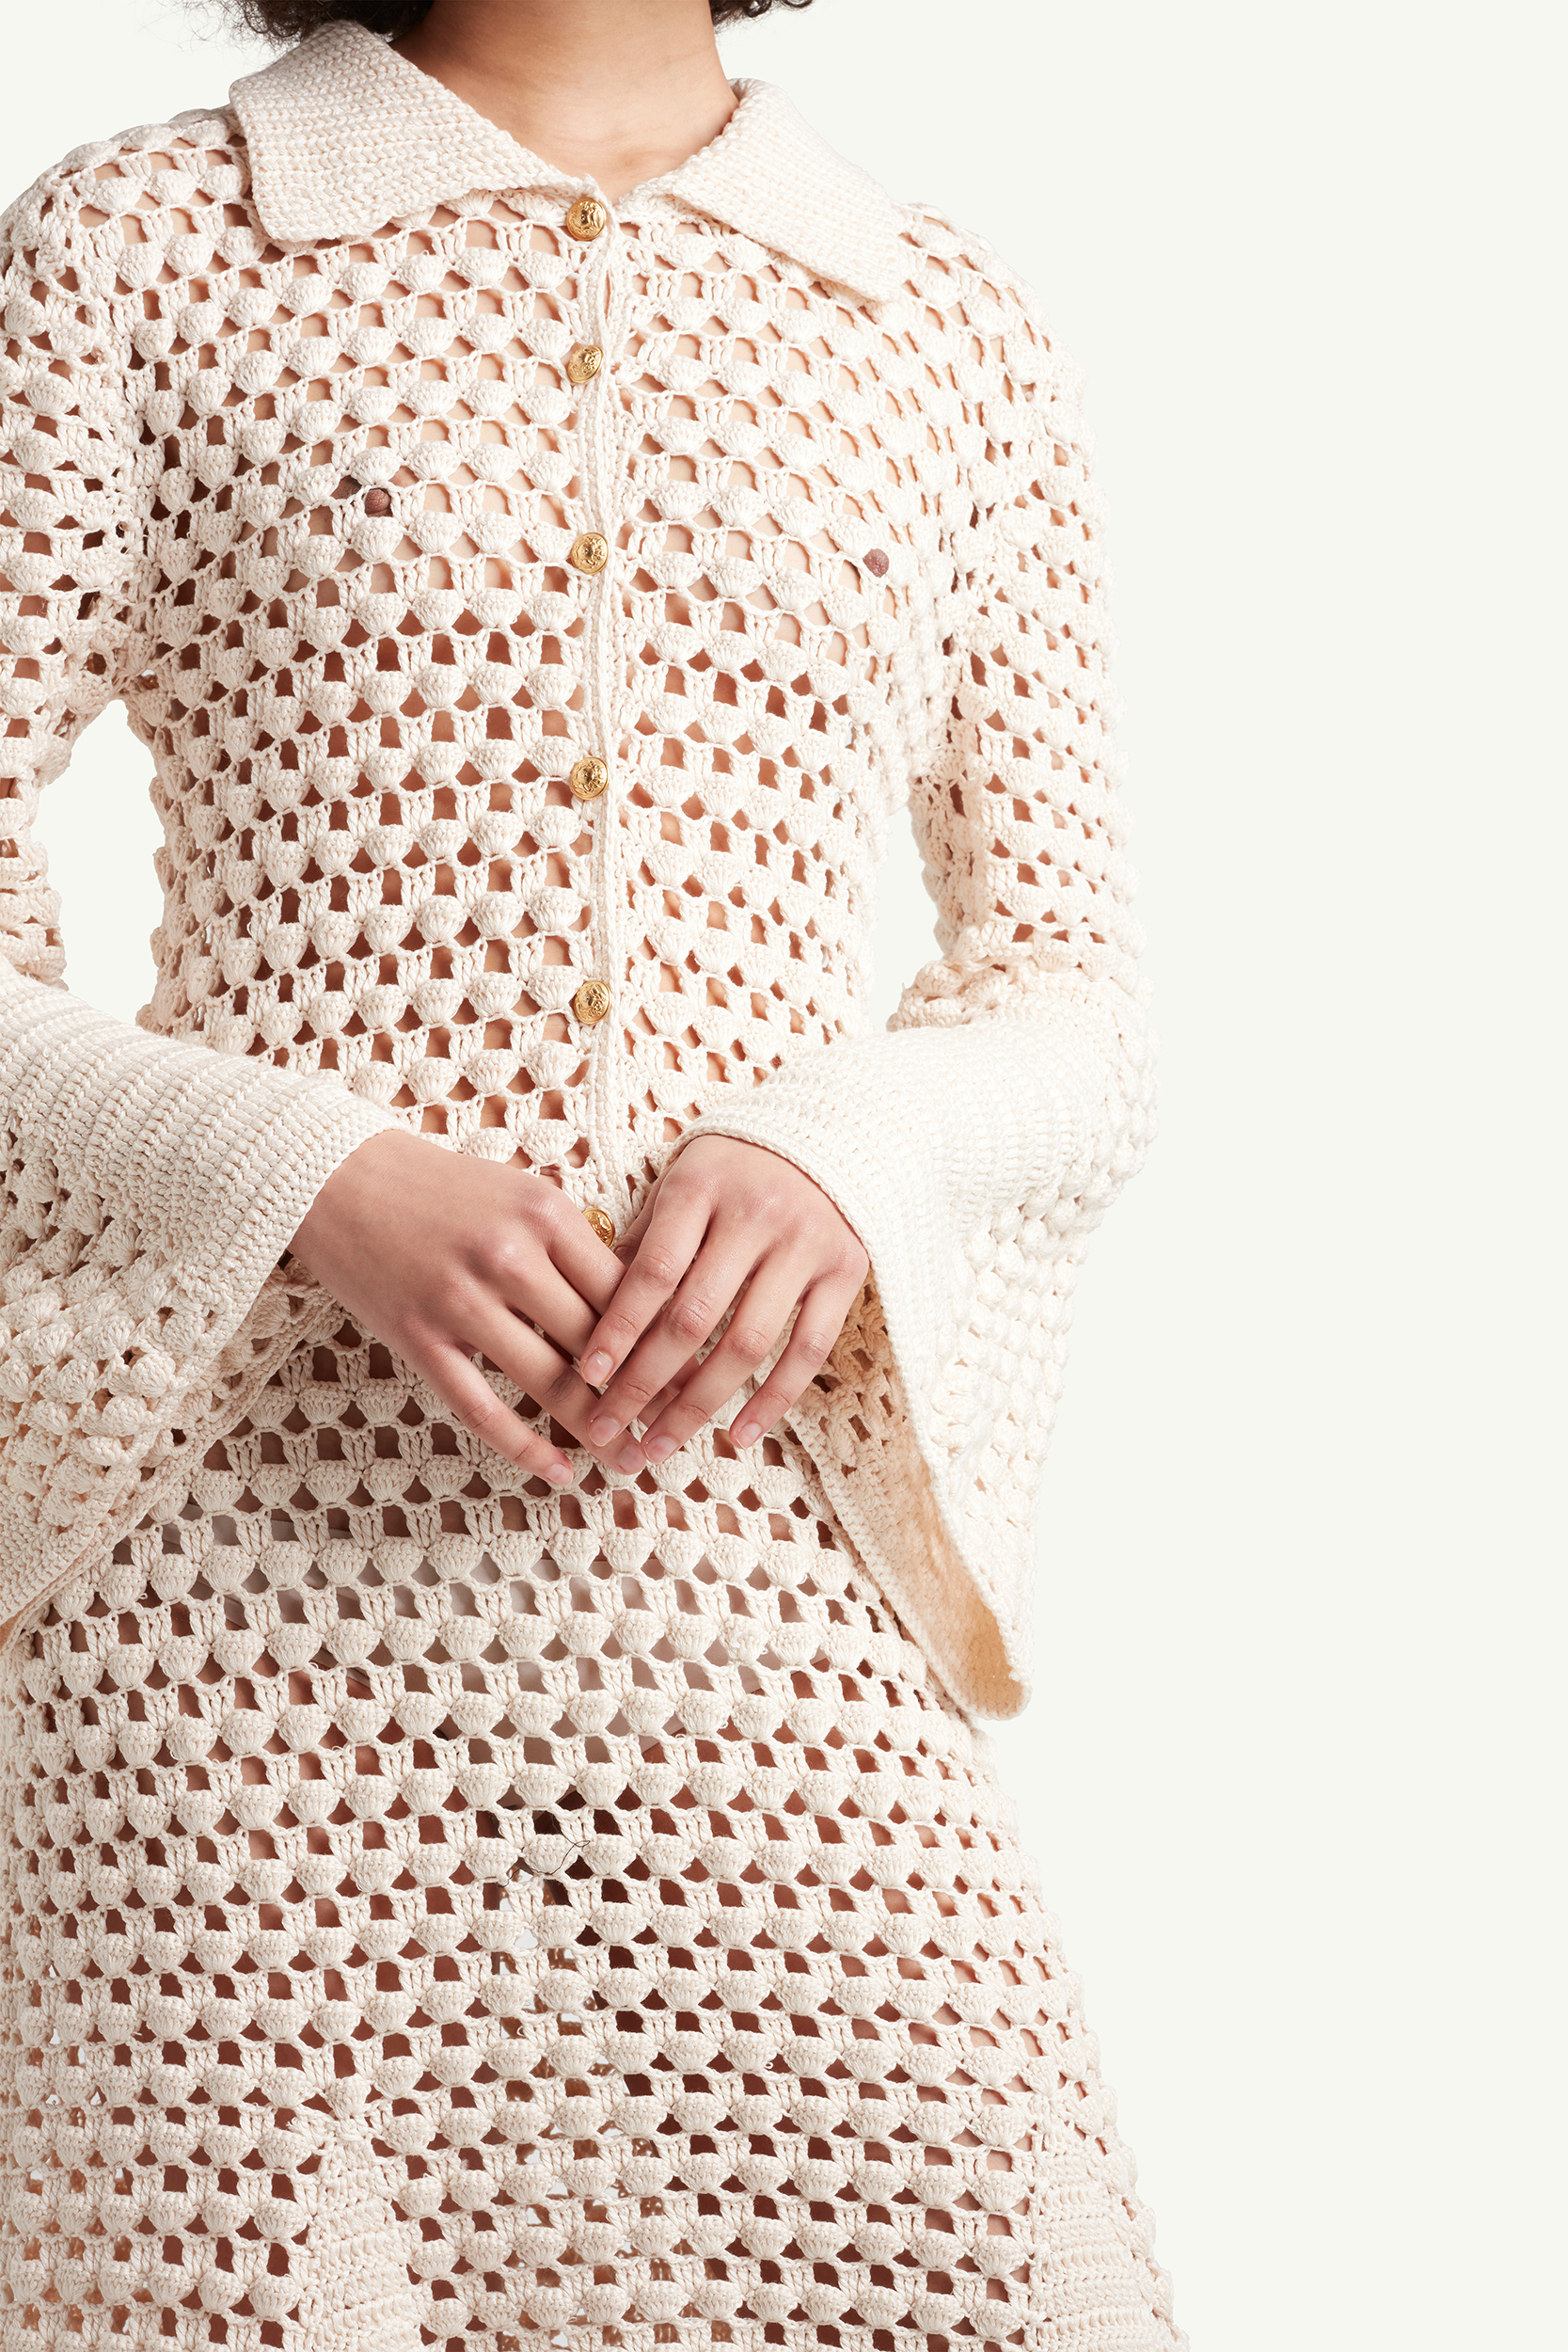 detail shot of the Wales Bonner Womenswear Model wearing a white see-through knitted dress | LRP